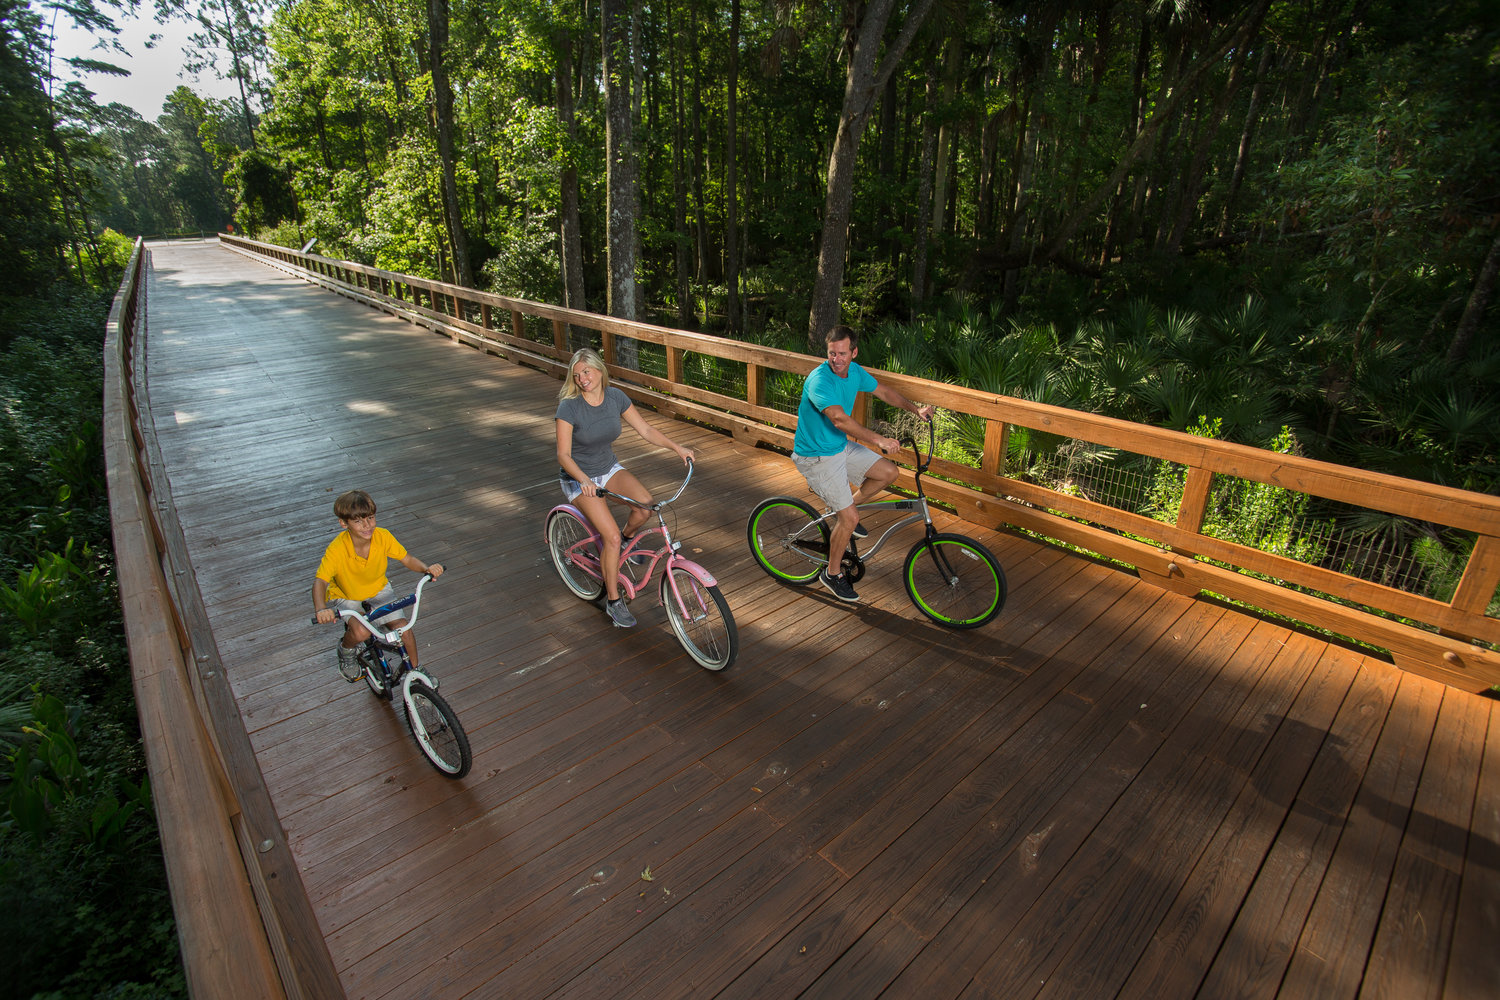 Nocatee is a family-friendly community with ample opportunities to enjoy the outdoors.